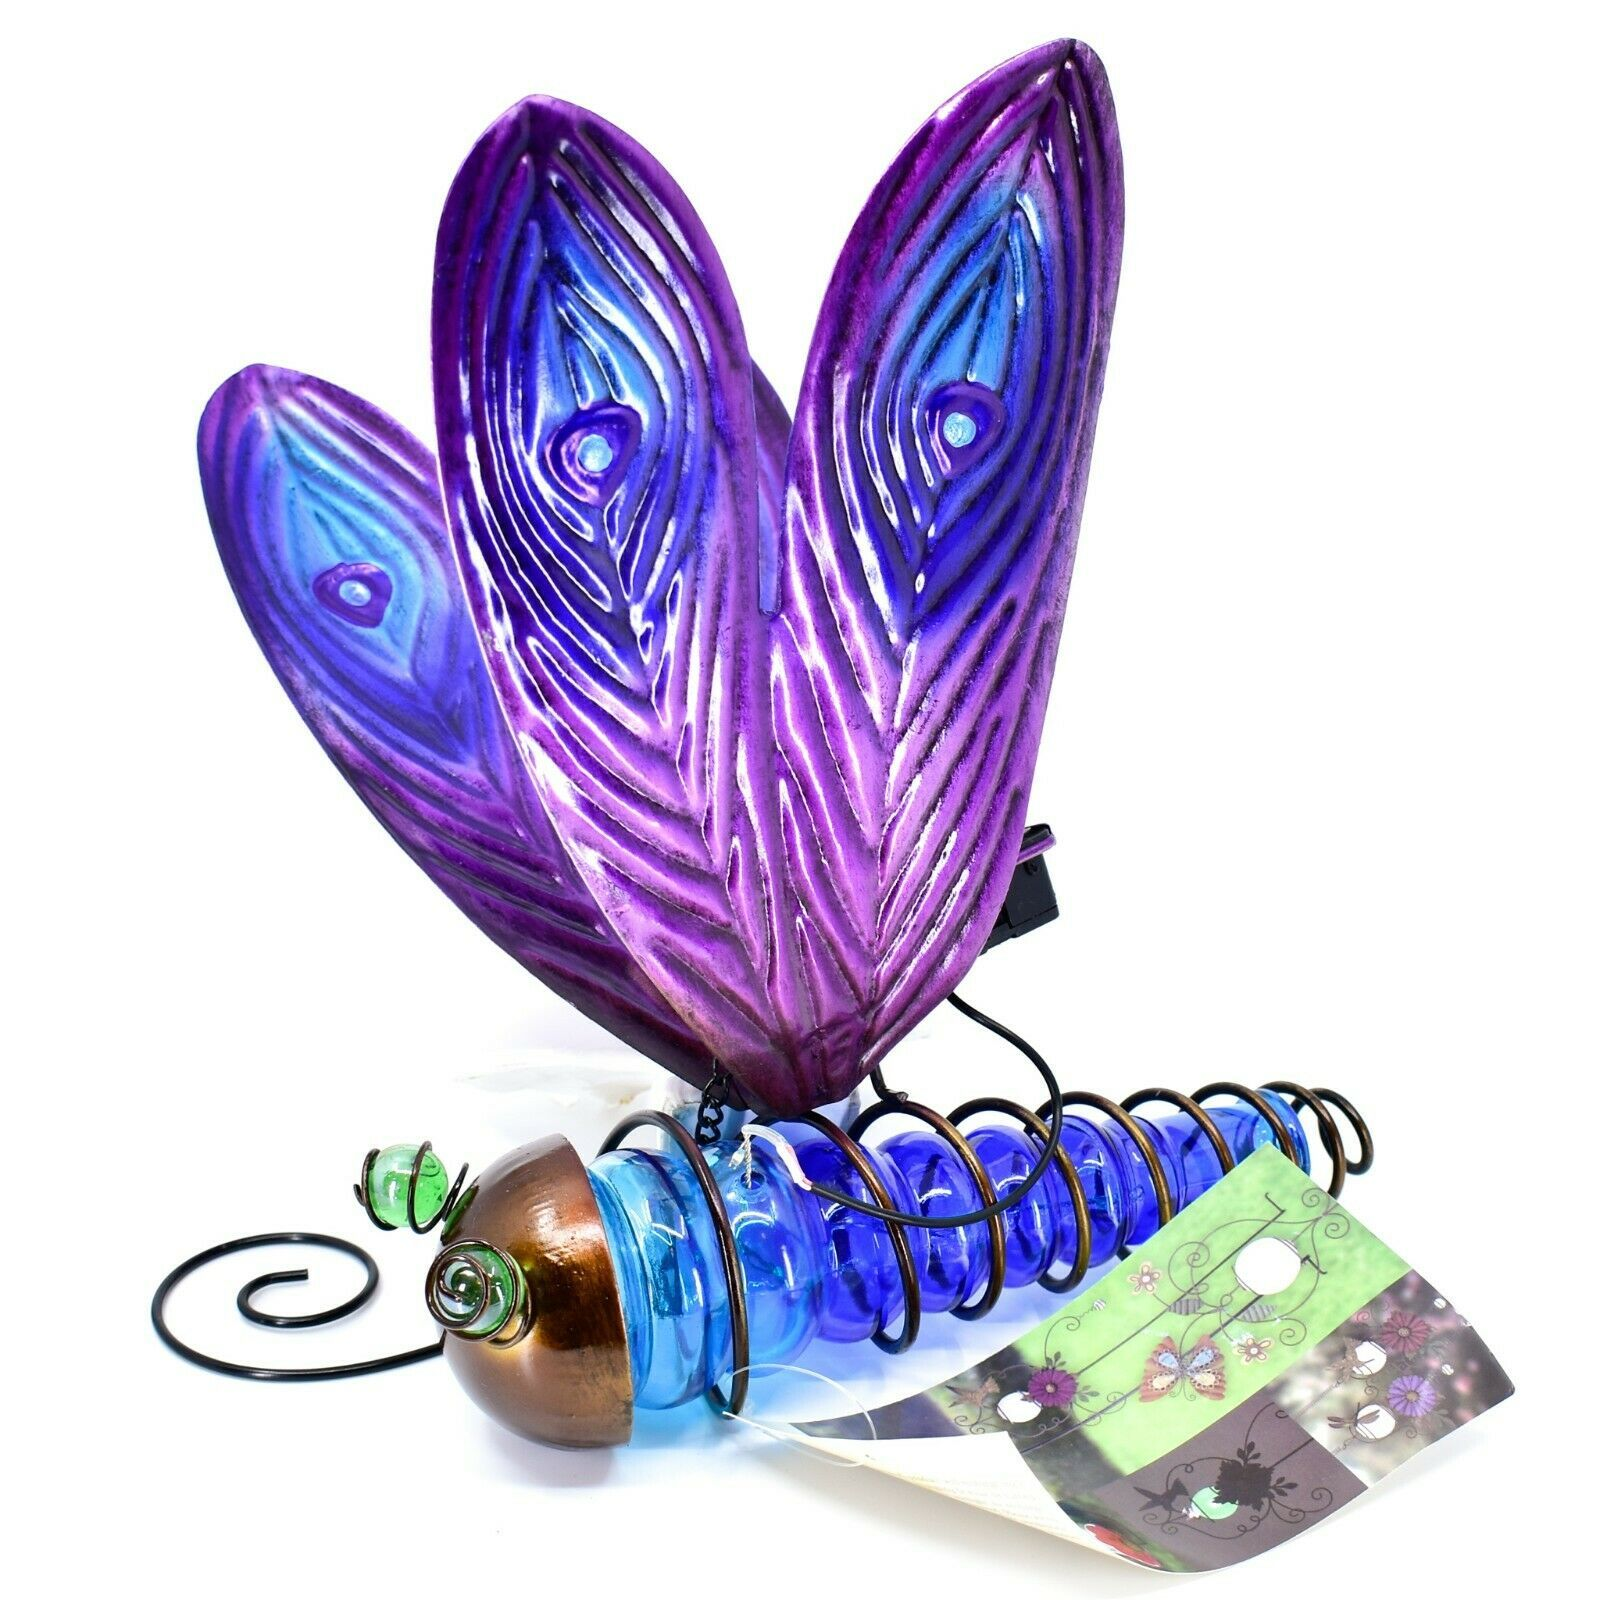 Painted Metal & Glass Solar Powered Light Garden Decoration Dragonfly Decor